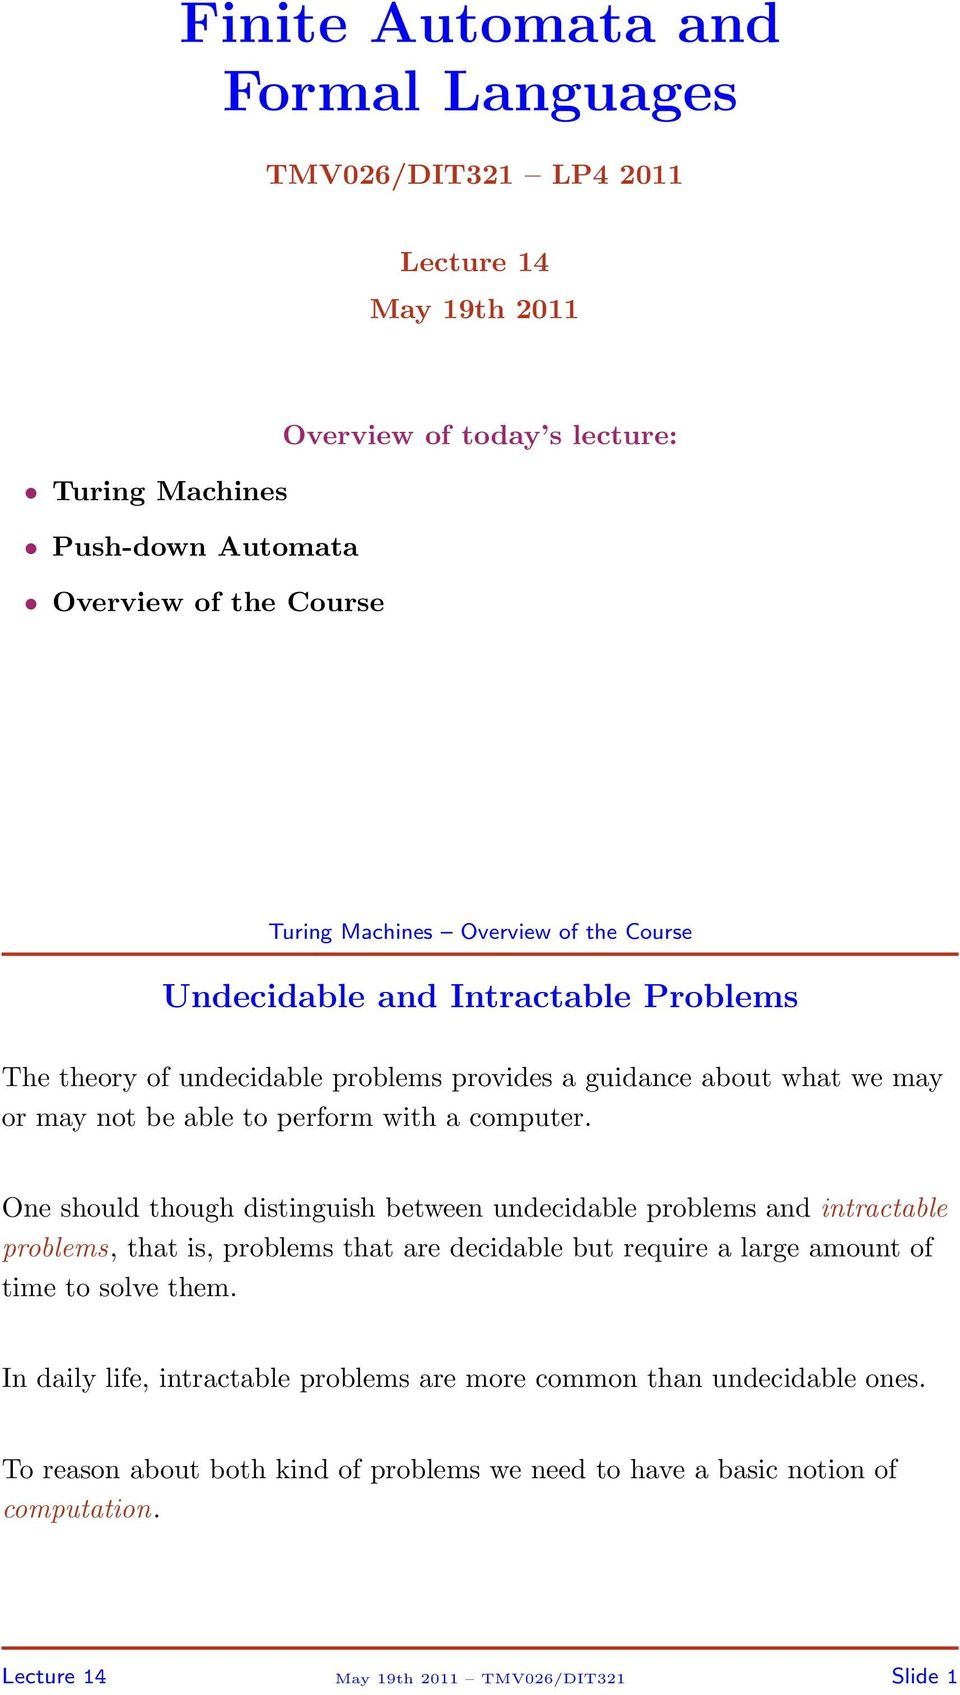 One should though distinguish between undecidable problems and intractable problems, that is, problems that are decidable but require a large amount of time to solve them.